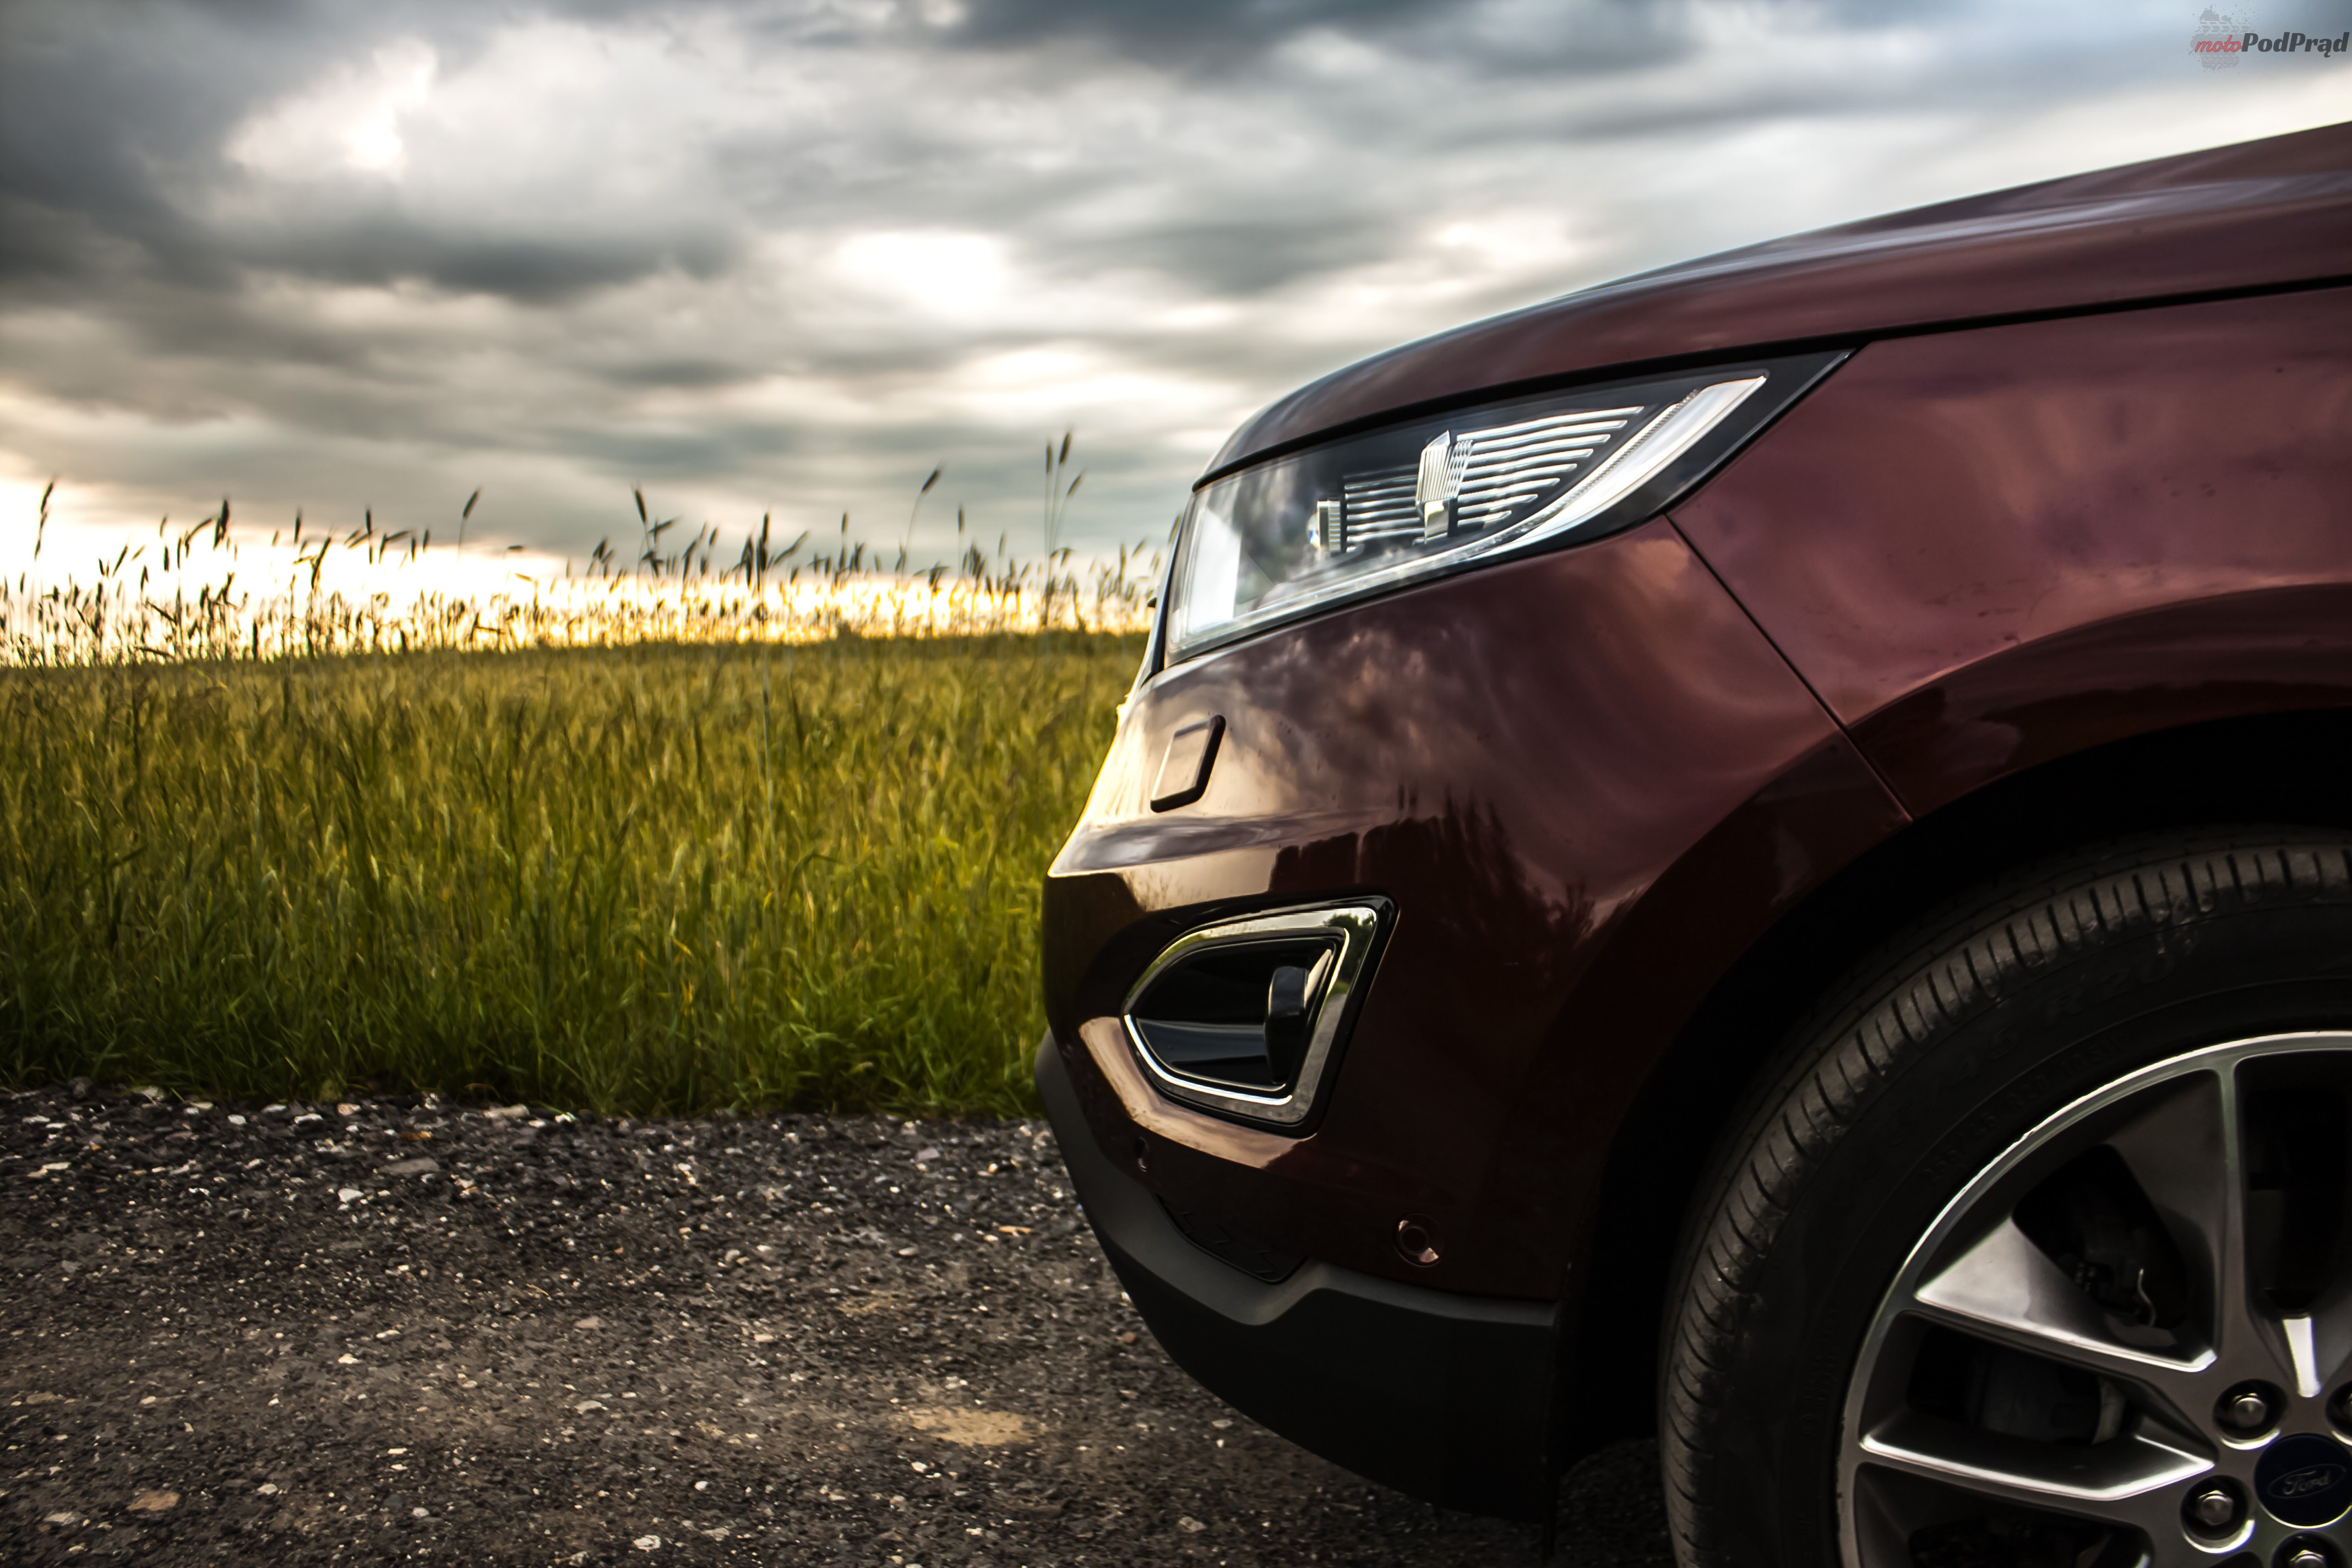 Ford Edge 12 Test: Ford Edge 2.0 TDCi   jazda na krawędzi